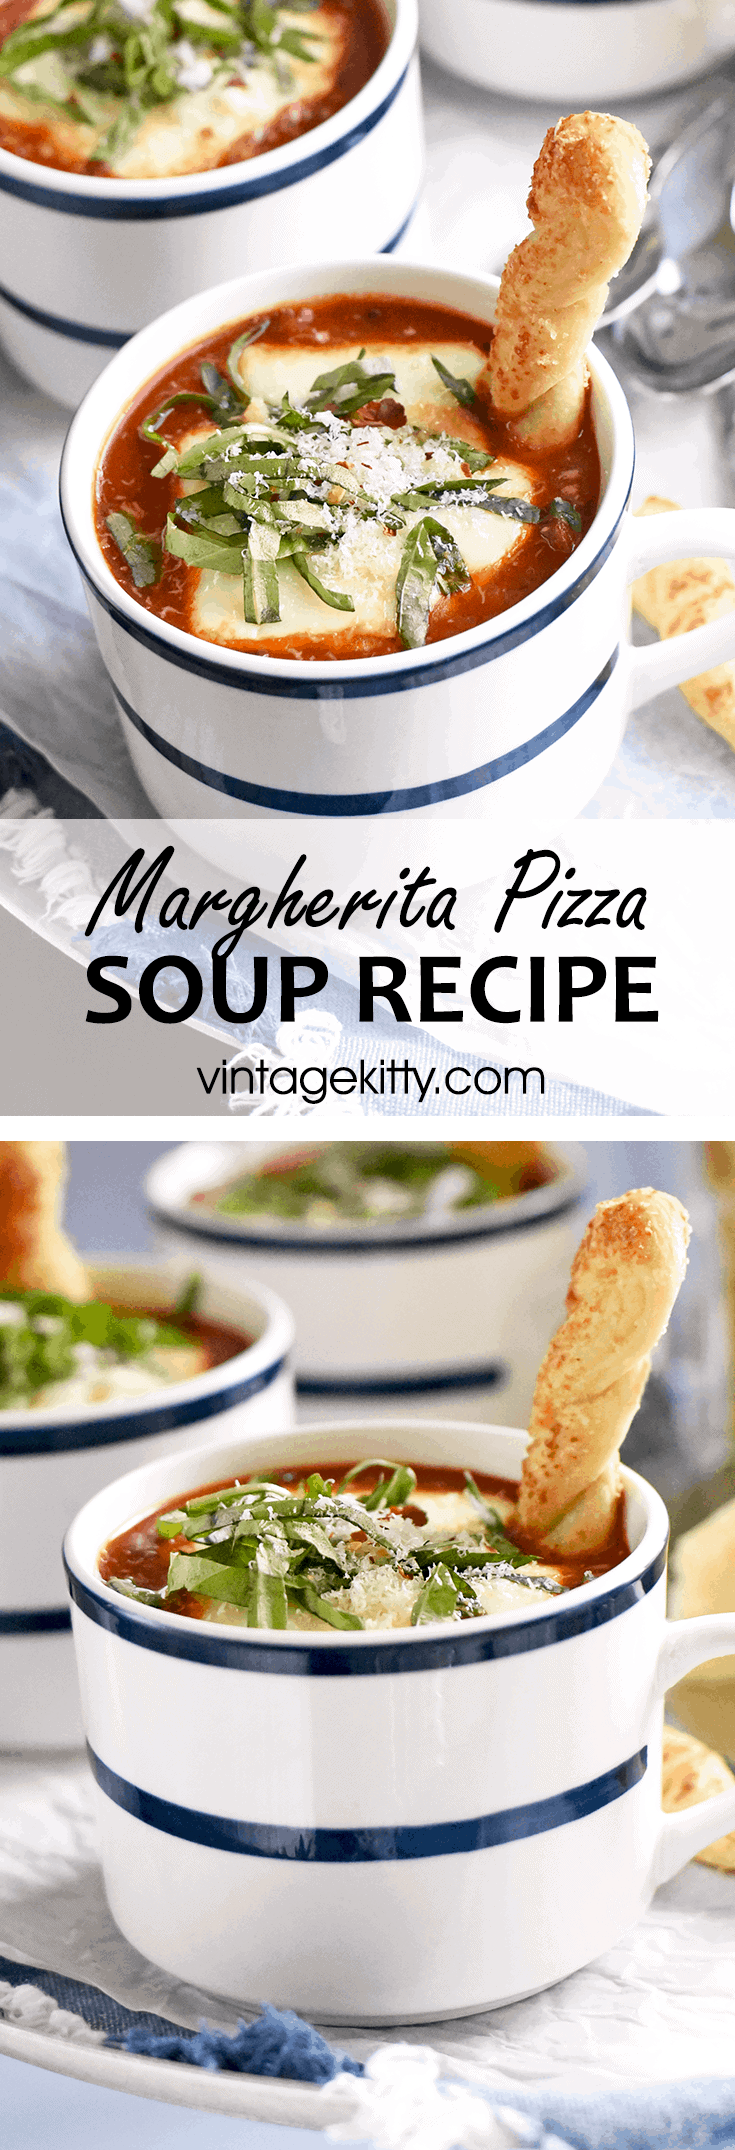 This fun soup has the flavors of margherita pizza, right down to the fresh basil and melty mozzarella cheese, but it's deconstructed for a creative twist. Perfect for a casual family dinner.